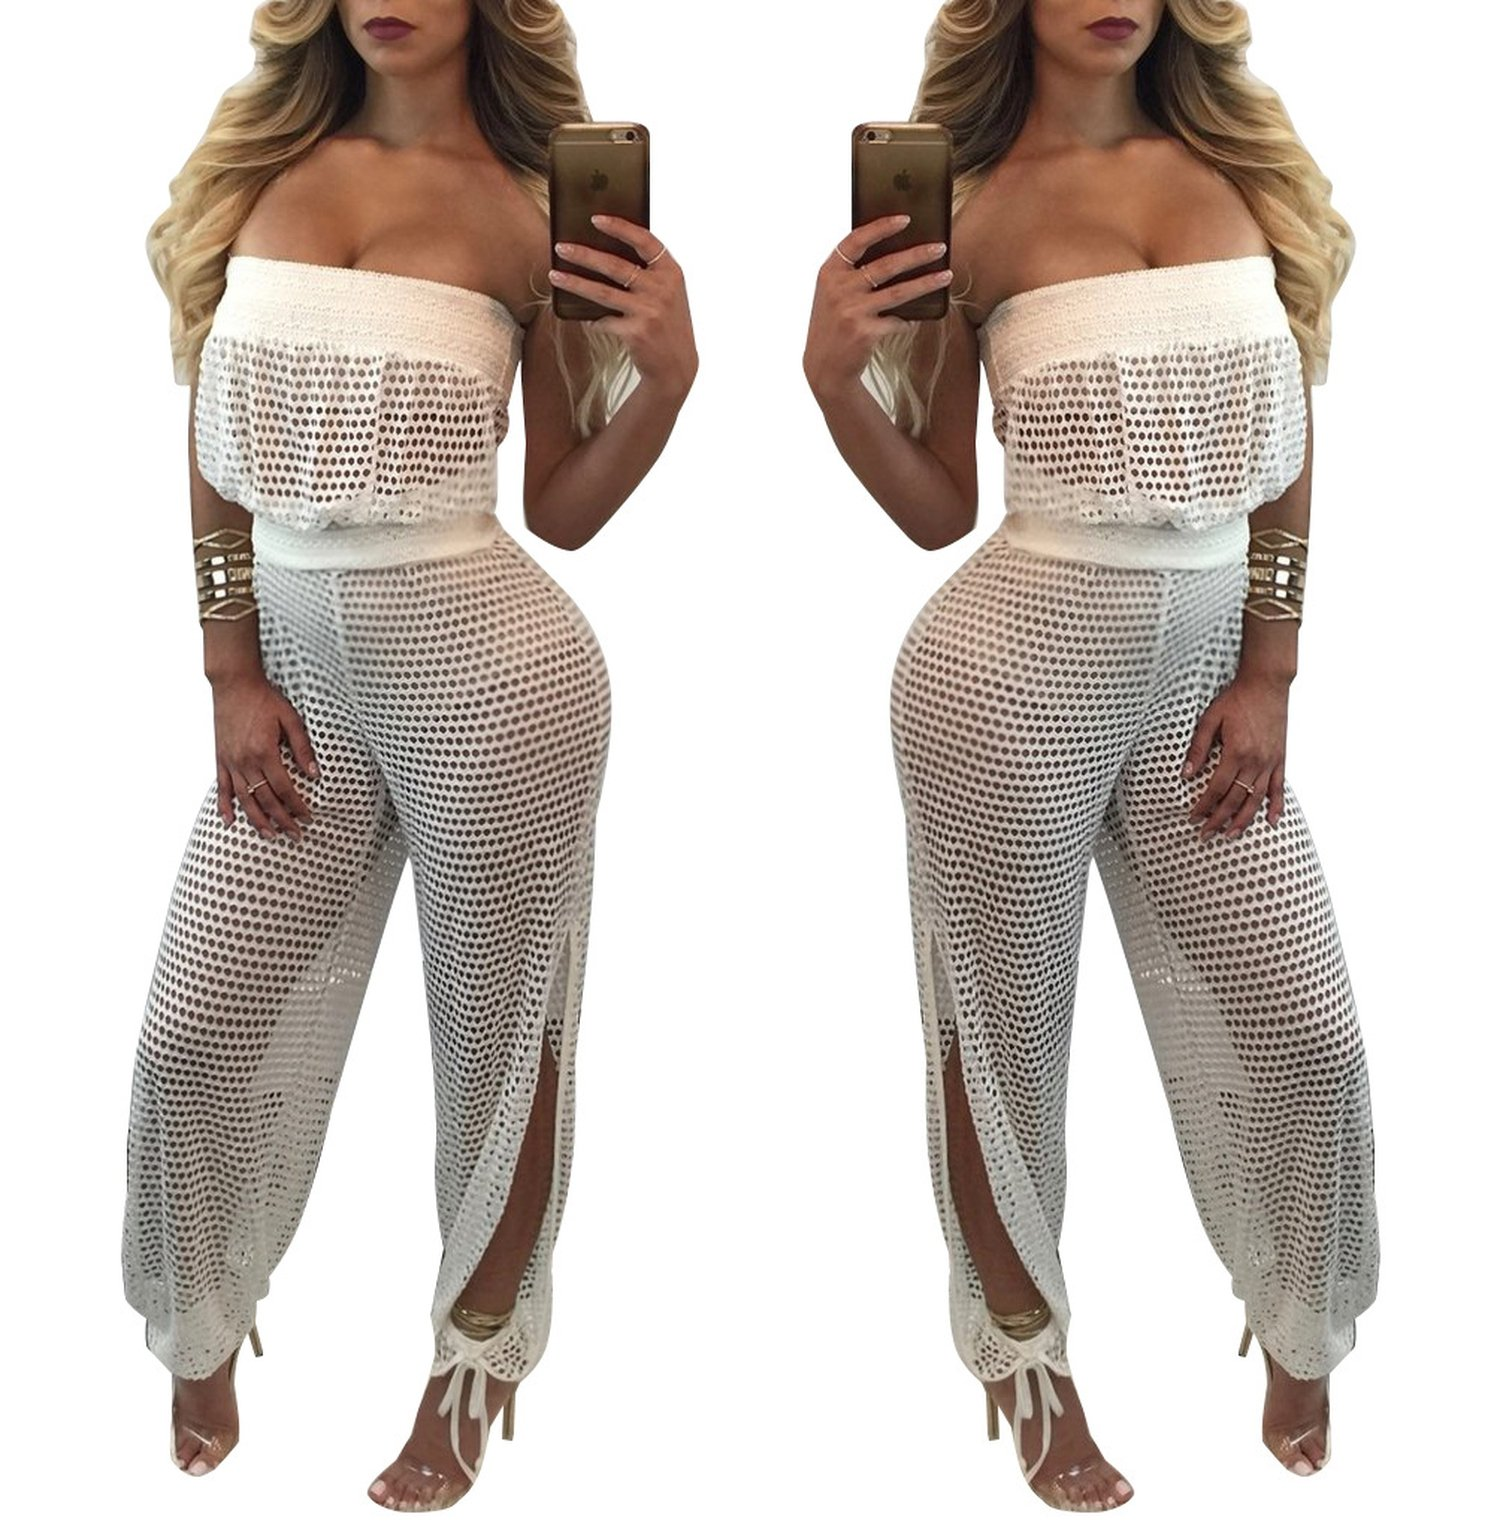 Prettyever Stylish Black Lace Side Zipper Bag Big Hip Cashew Lace Jumpsuit,White,S